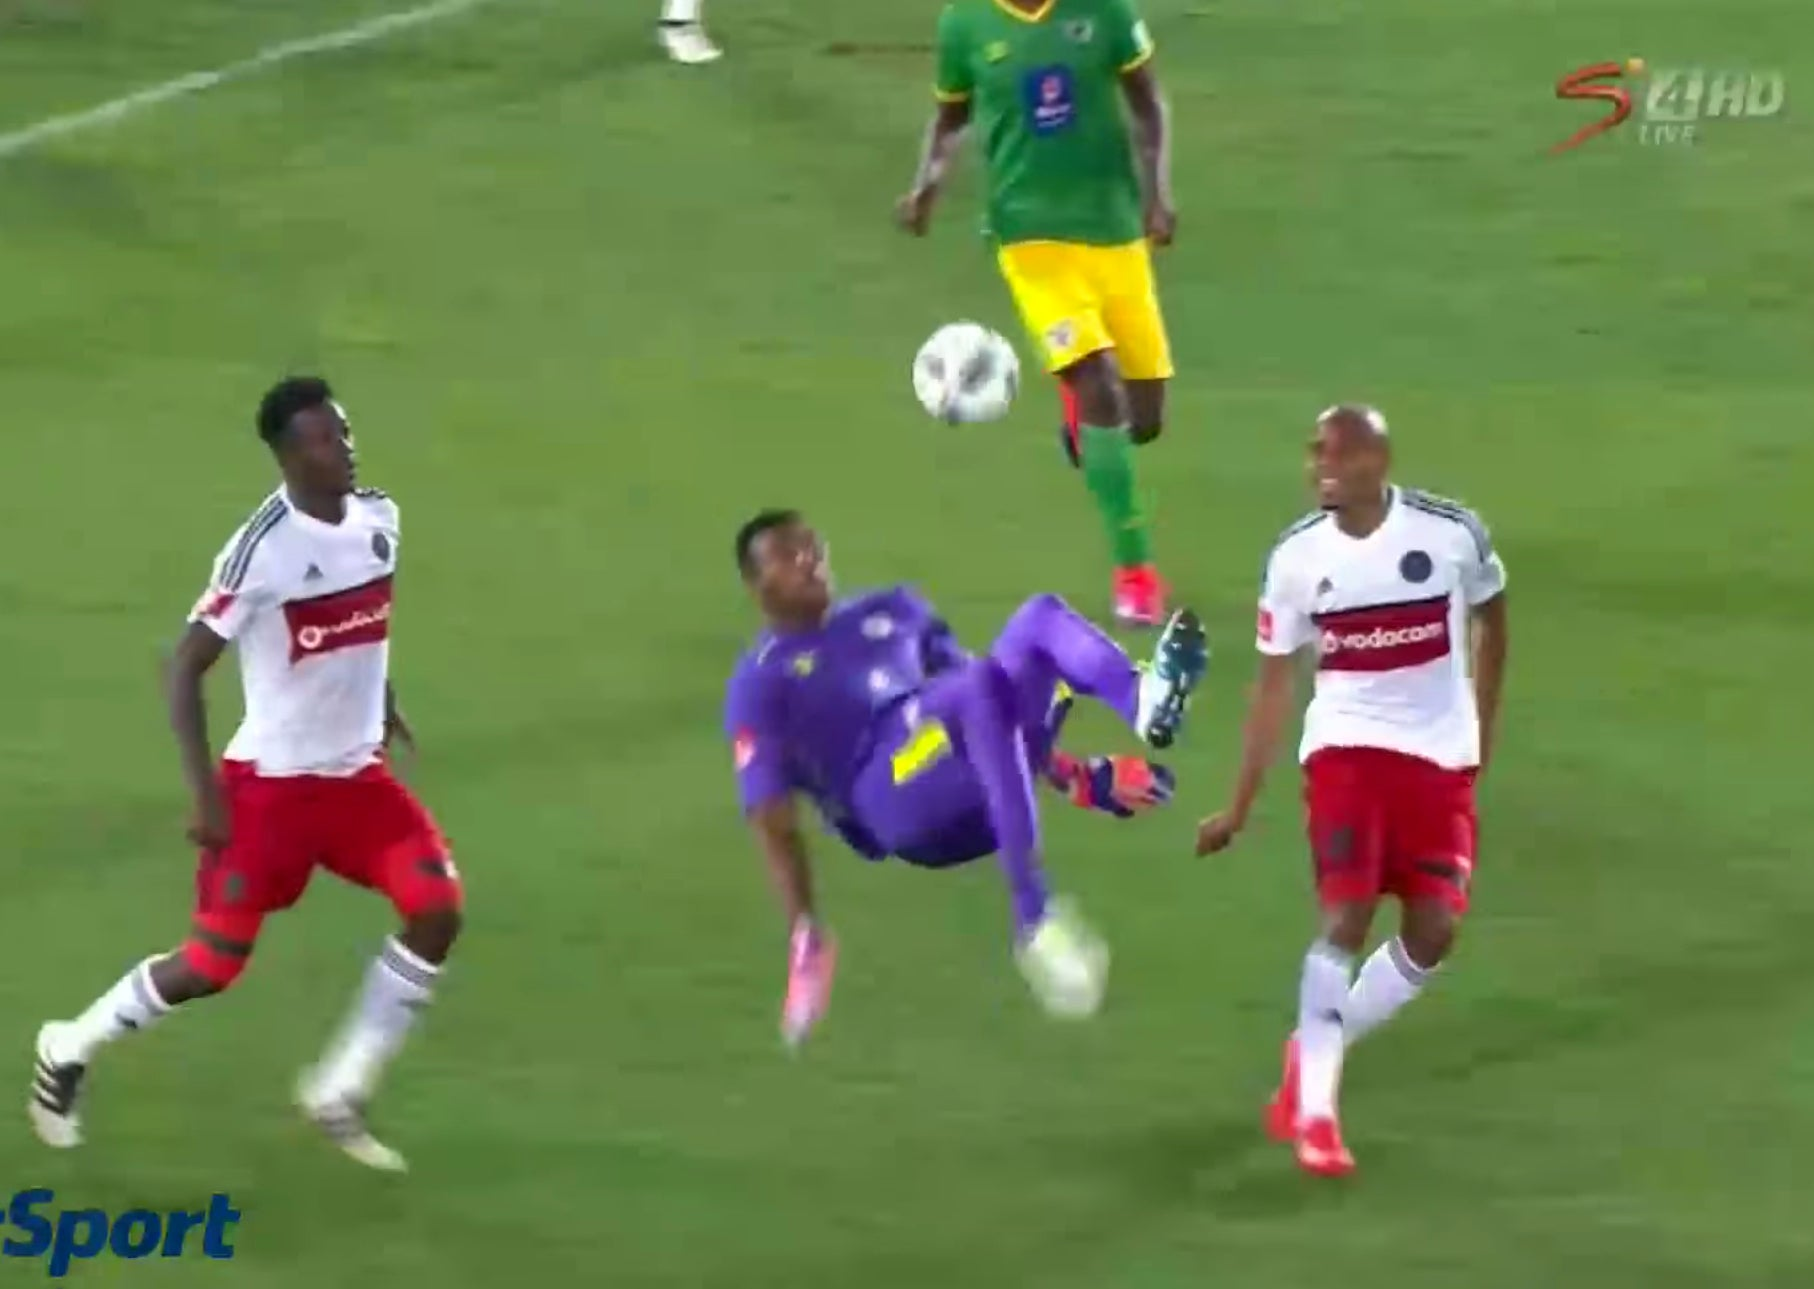 South African goalkeeper stuns football world with 96th minute overhead kick